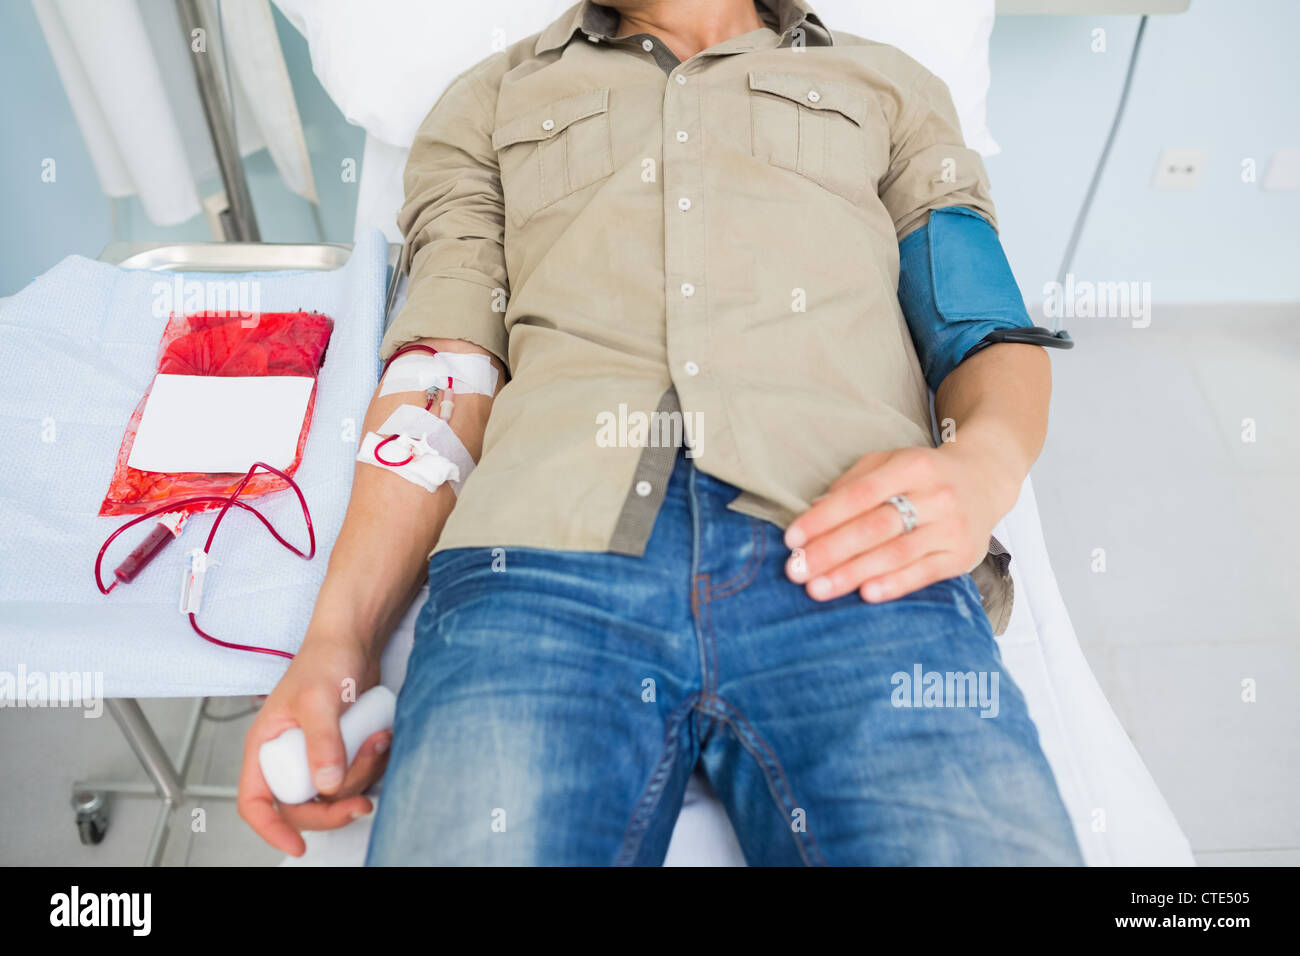 Male patient receiving a blood transfusion Stock Photo